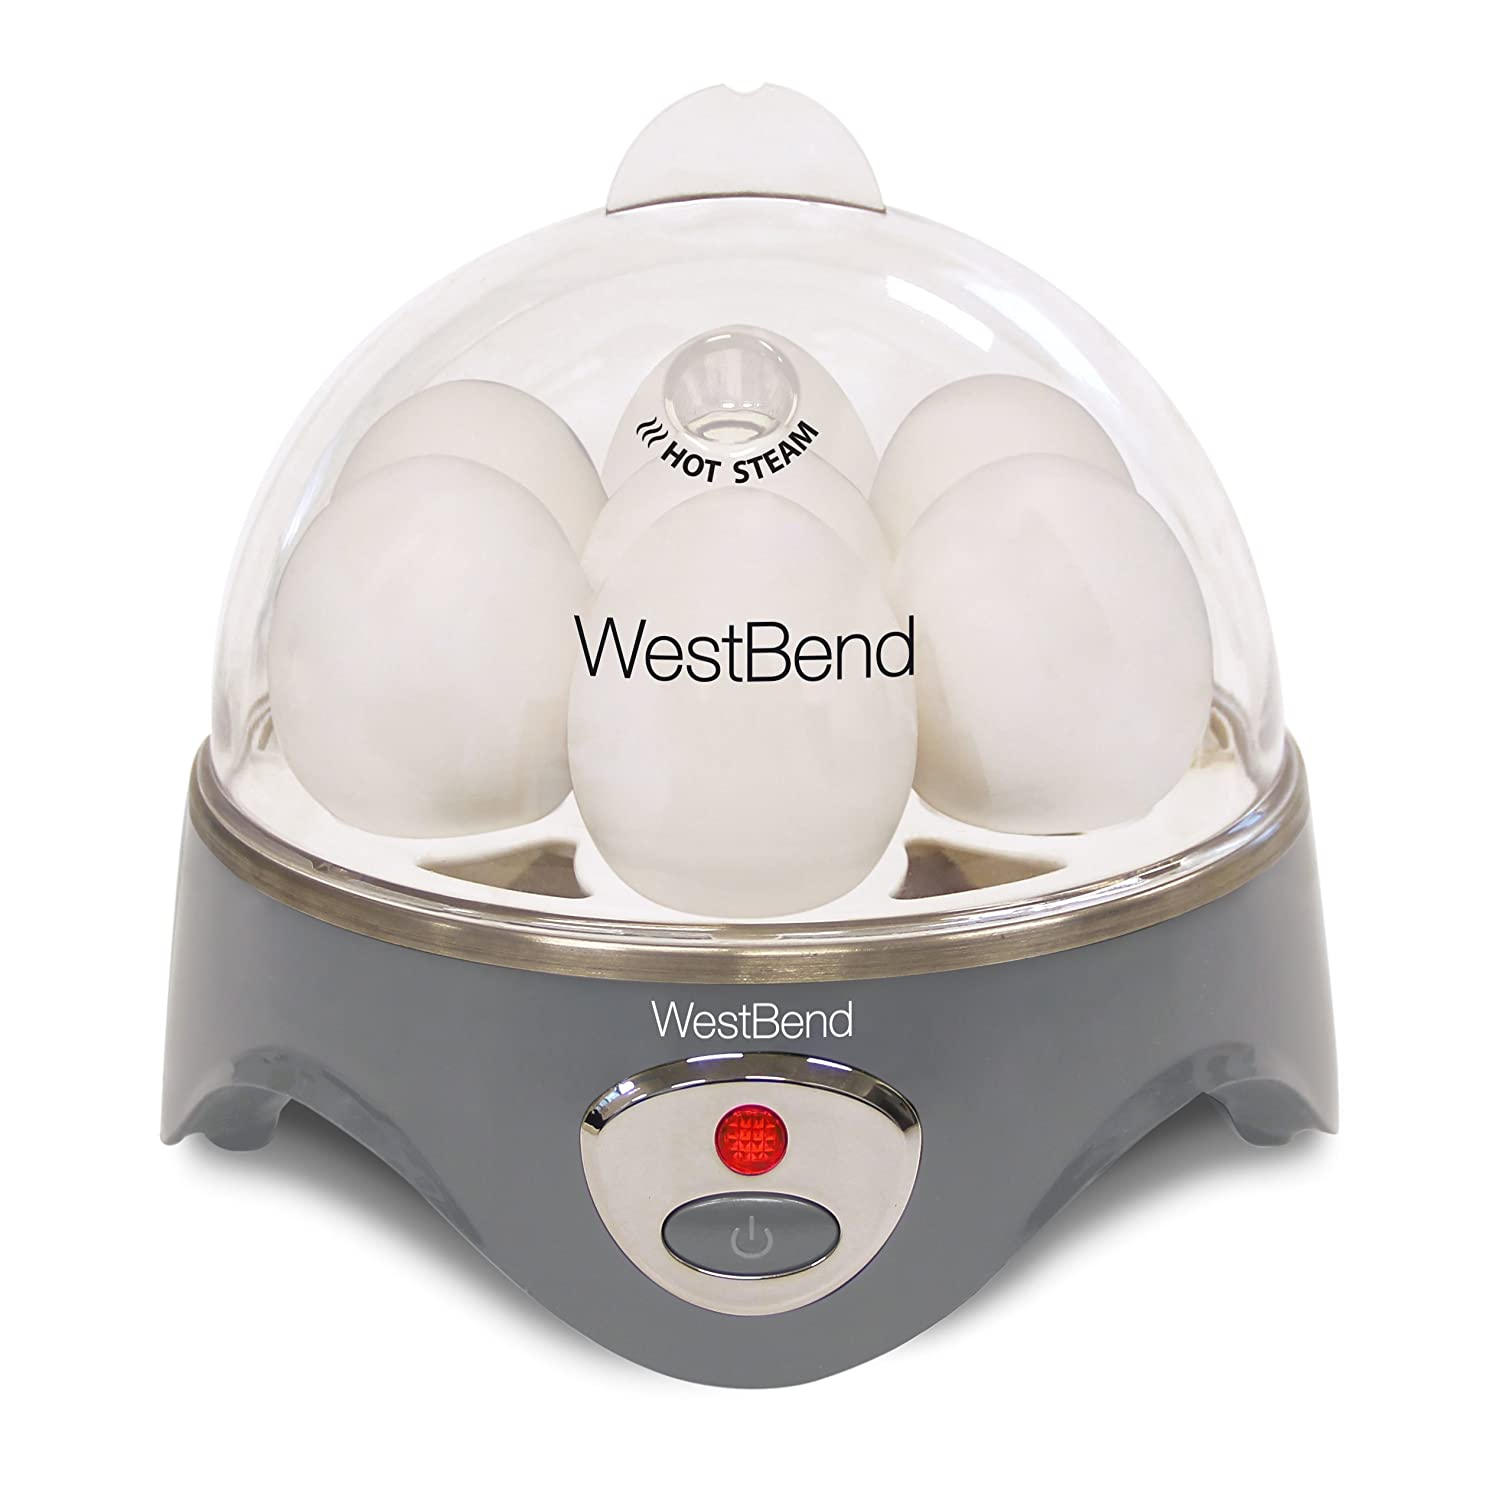 West Bend 87628 Automatic Electric Cooker Hard-or Soft-Cook 7 Eggs or 2 Poached or Scrambled, 360 Watts, Gray